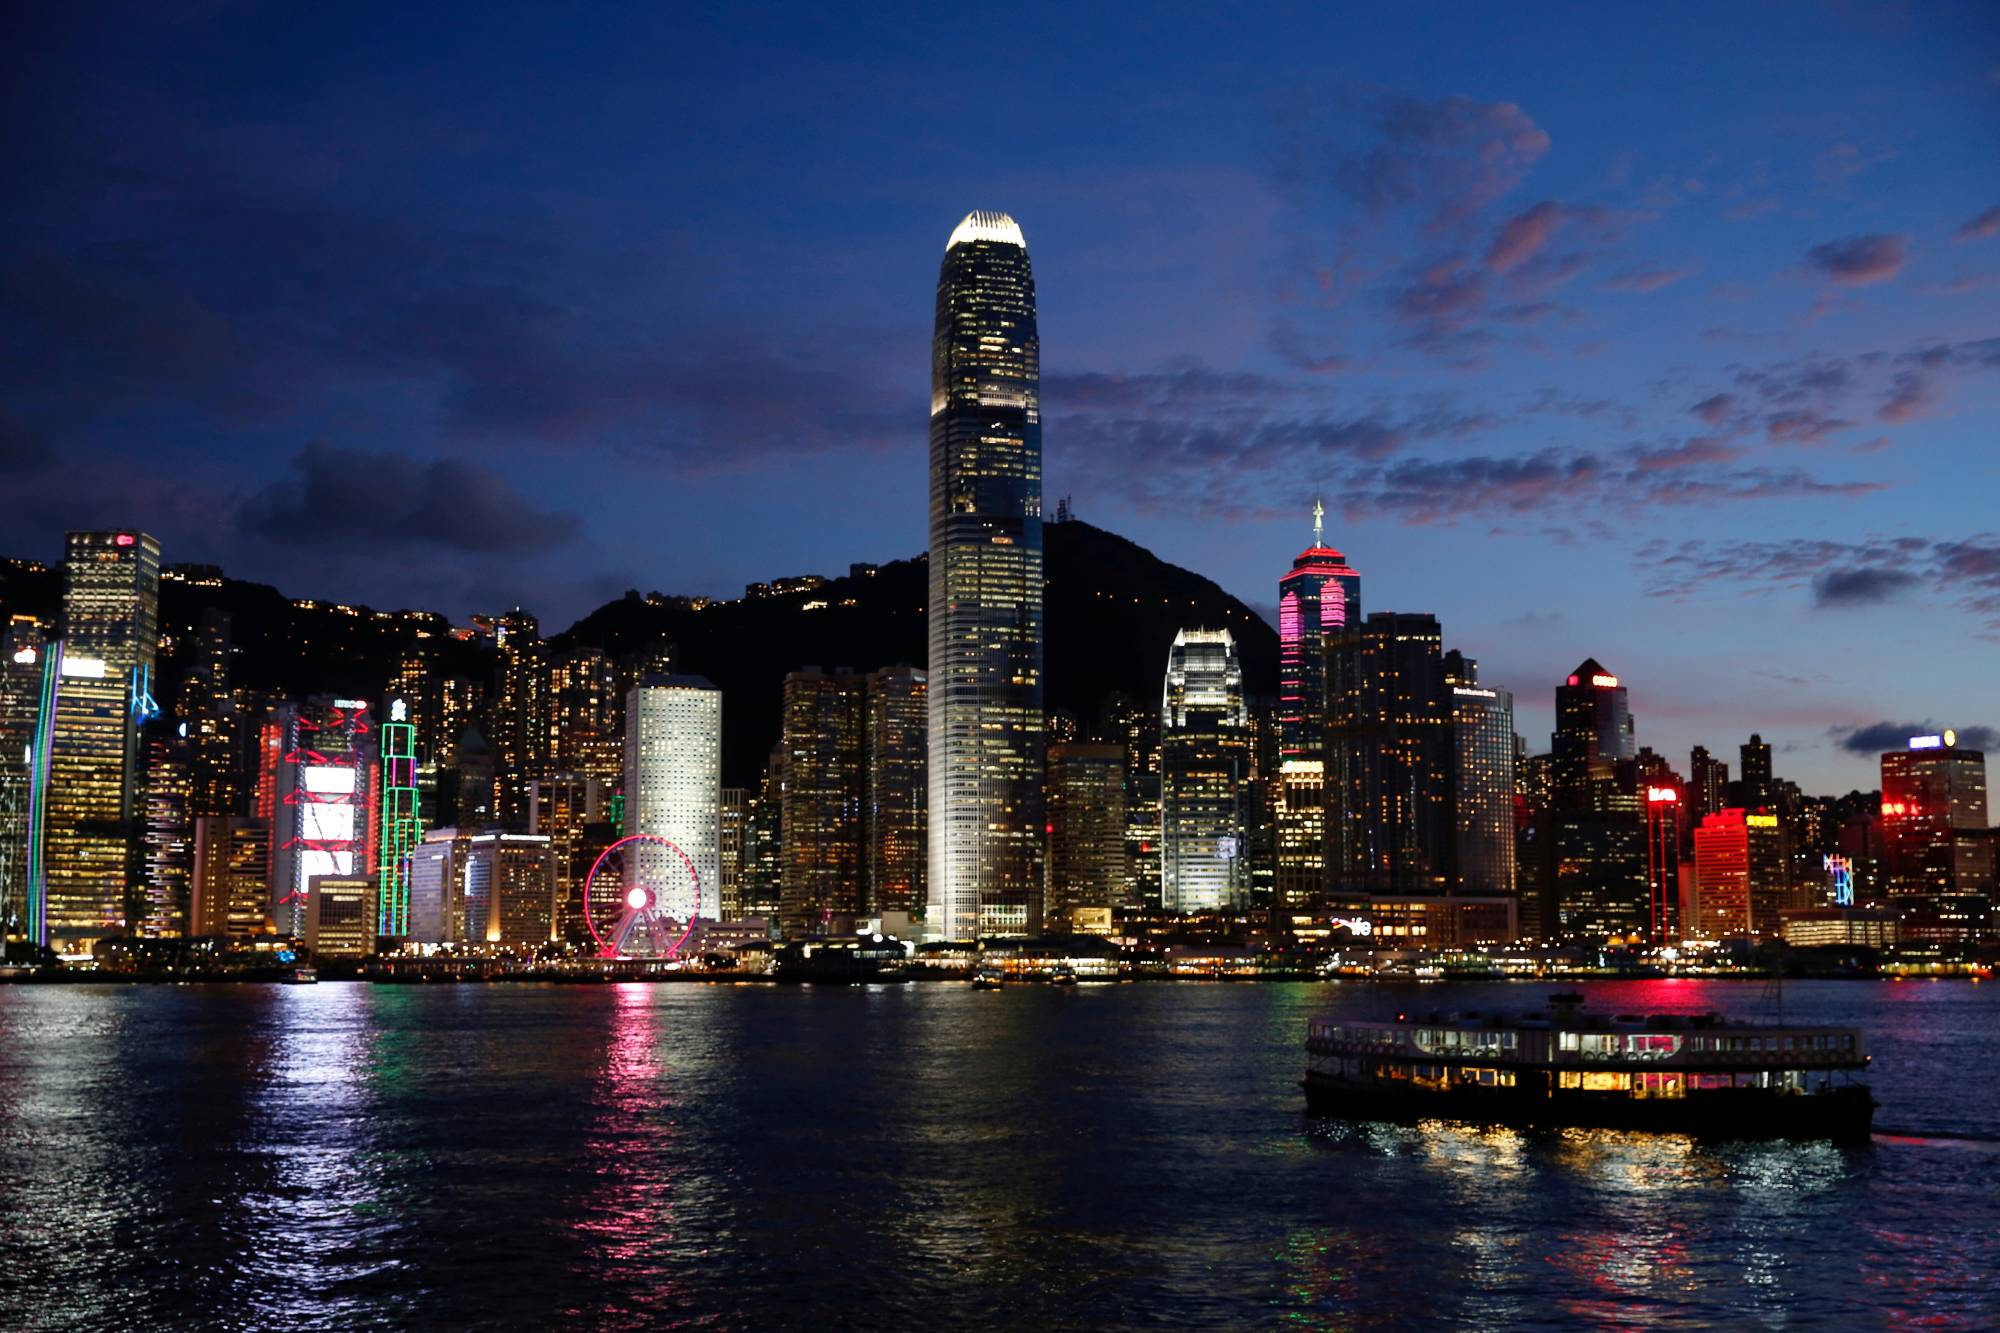 A boat crosses Victoria Harbour in front of a skyline of buildings during sunset in Hong Kong on June 29, 2020. | REUTERS